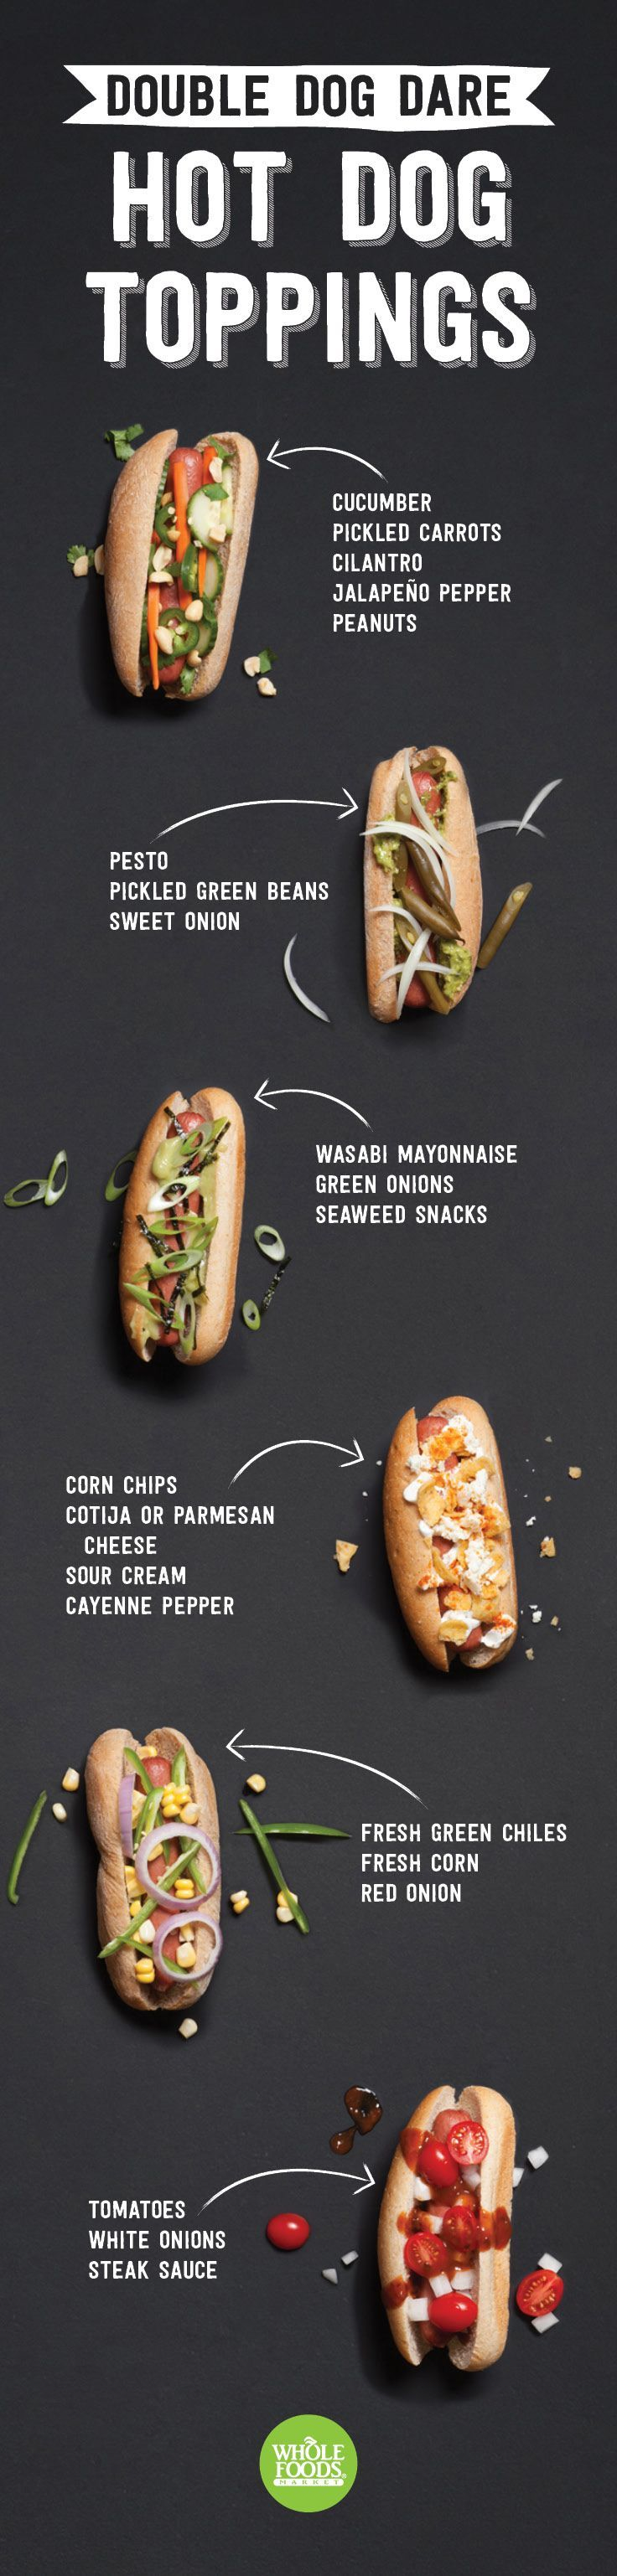 See more HERE: https://www.sunfrog.com/Make-Everyday-Earth-Day.html?53507  Seems super appropriate for National Hot Dog Day, right?! If you're trying to come up with a killer recipe and/or delicious and new ways to top your dogs, look no further. We've got inspirations from Thai food, German, Latin, Japanese, and all sorts of other global flavors!